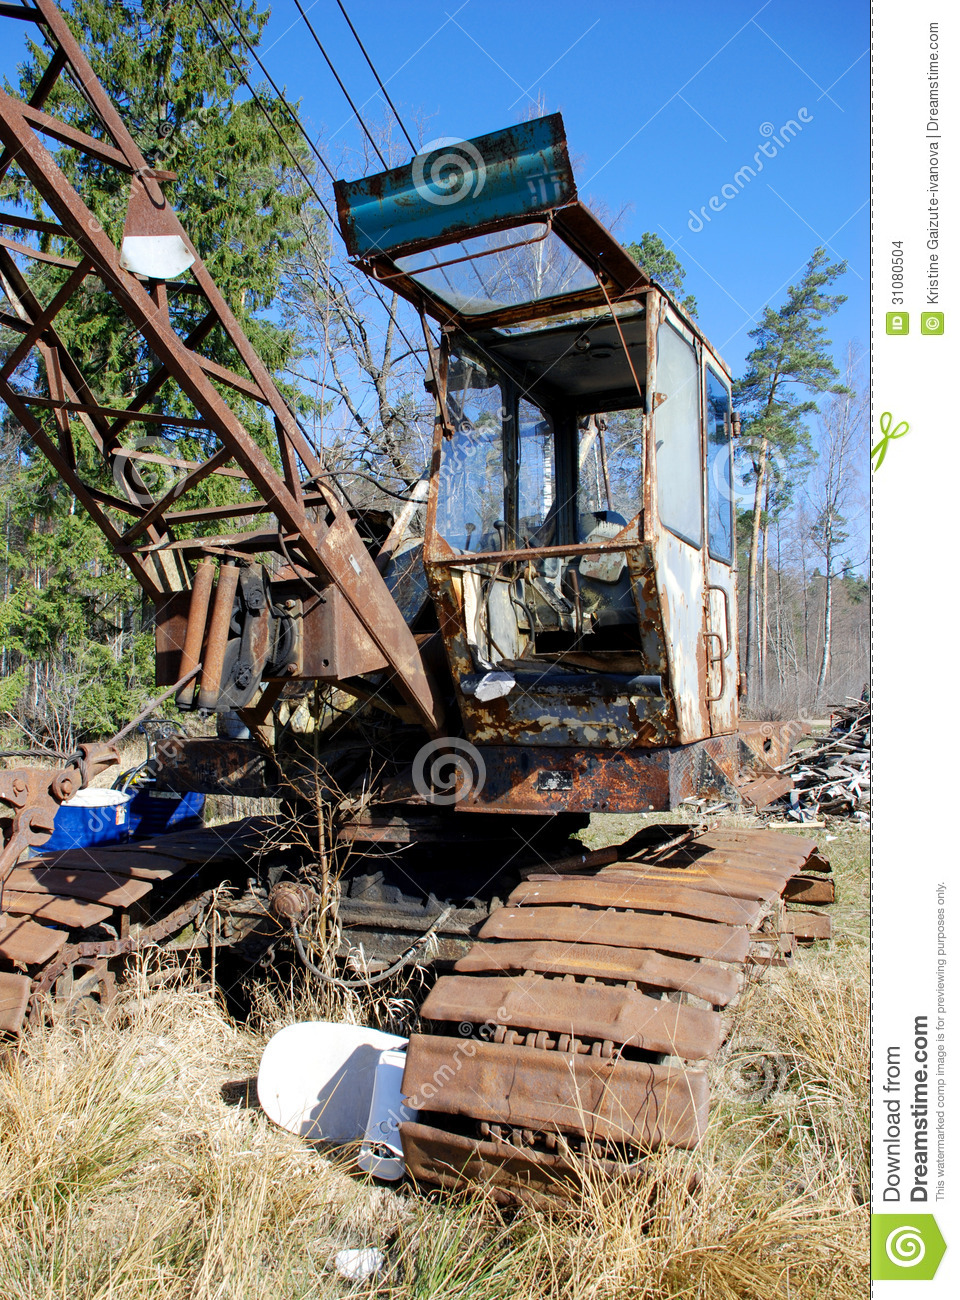 Old caterpillar earth mover